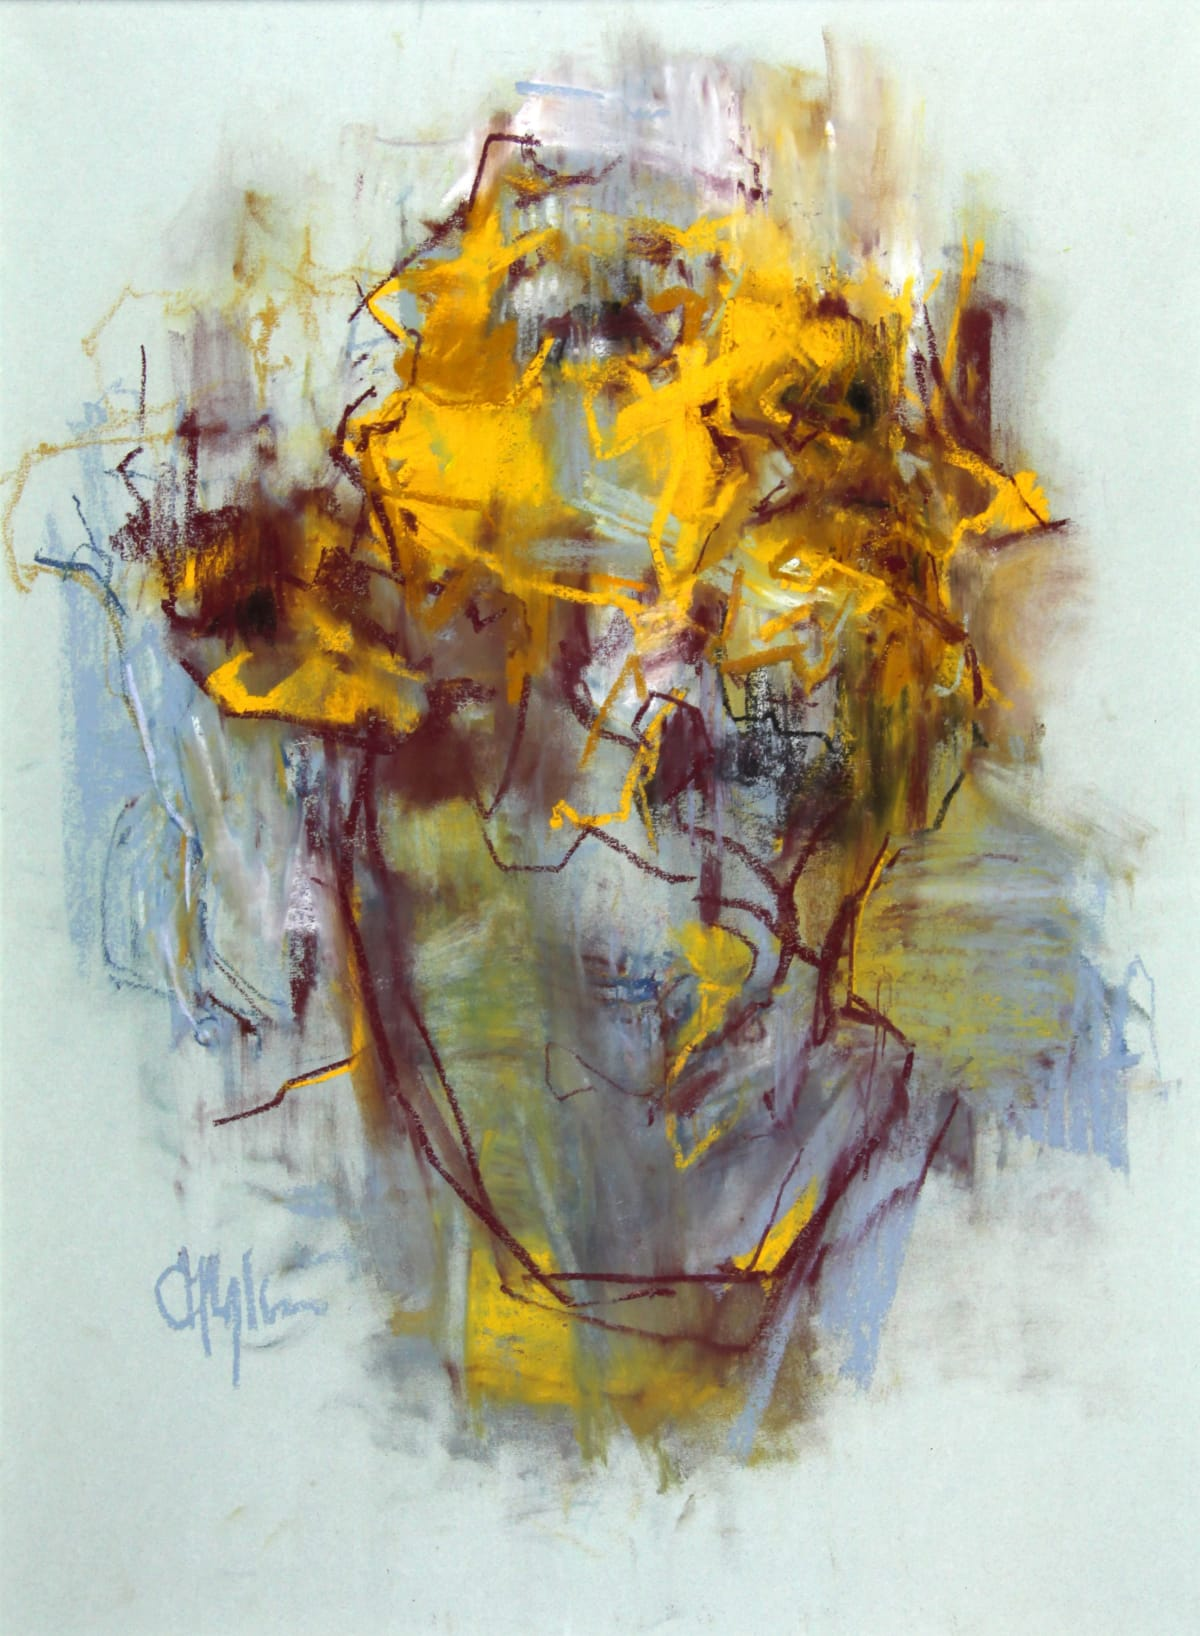 Cian McLoughlin Tronie - Yellow drawing Chalk on paper 27 x 20 inches